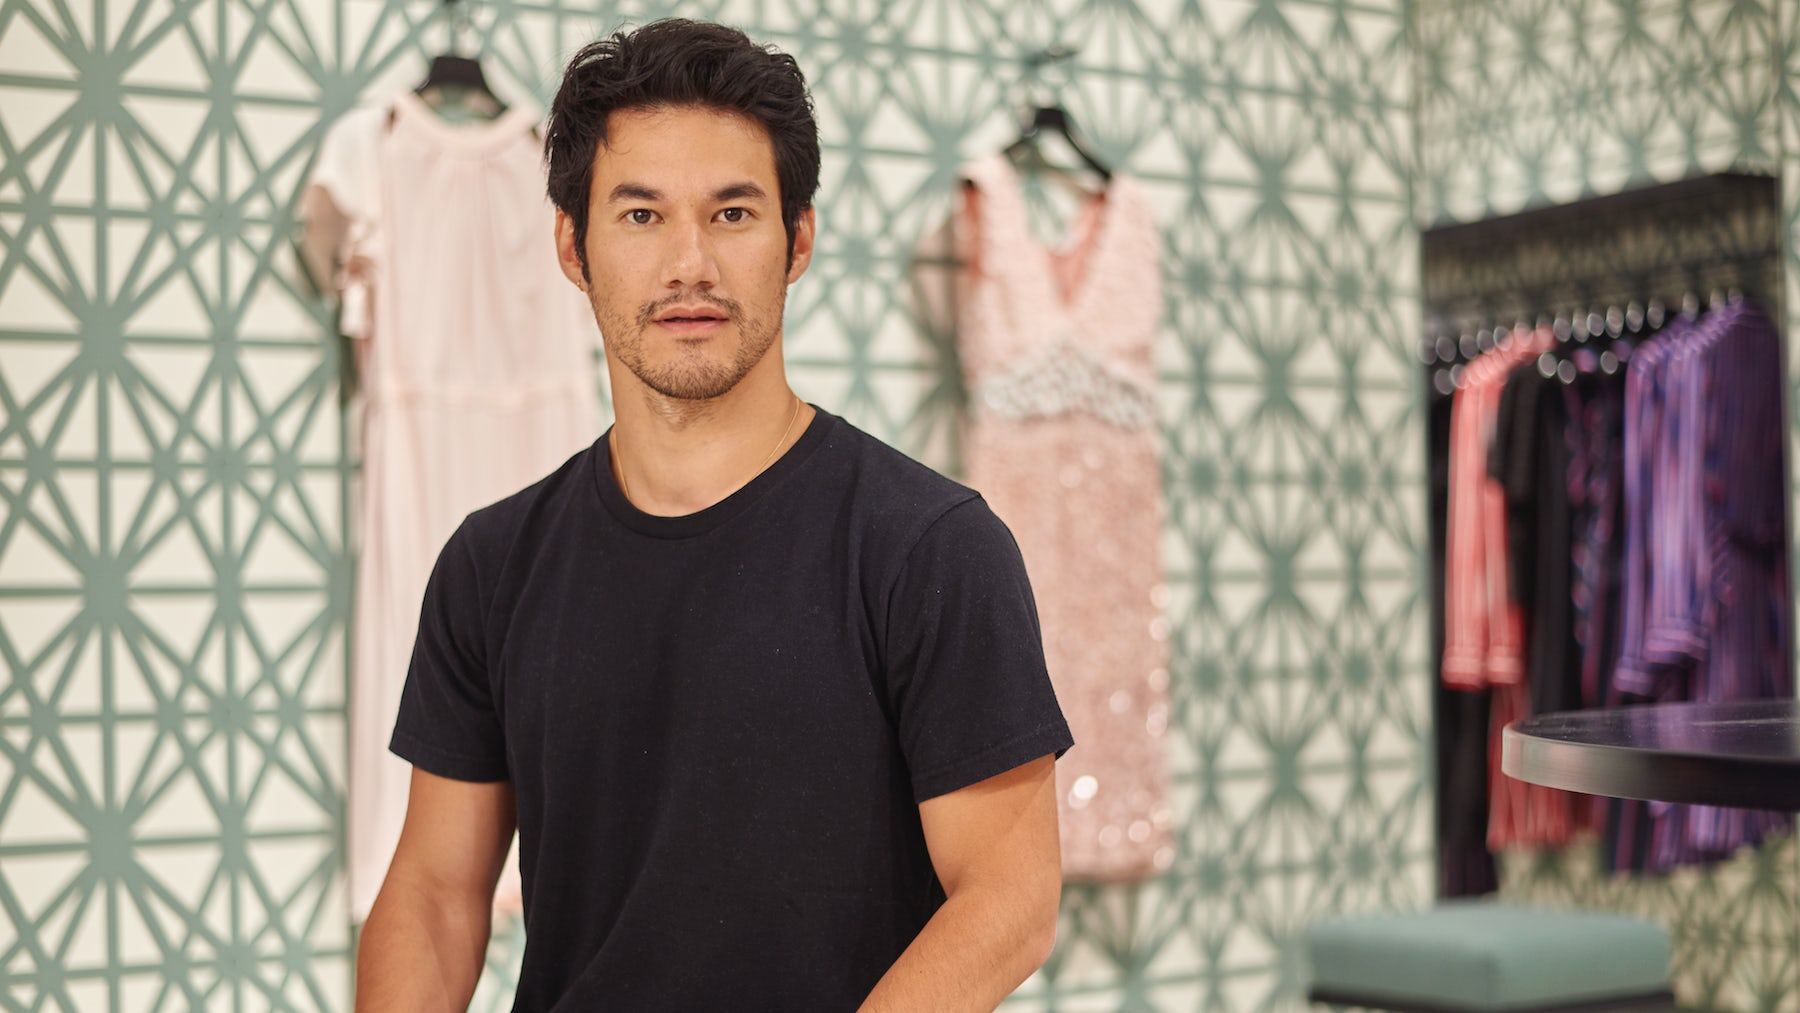 Joseph Altuzarra at his  shop-in-shop in Saks Fifth Avenue's New York City flagship | Photo: Richie Talboy for BoF